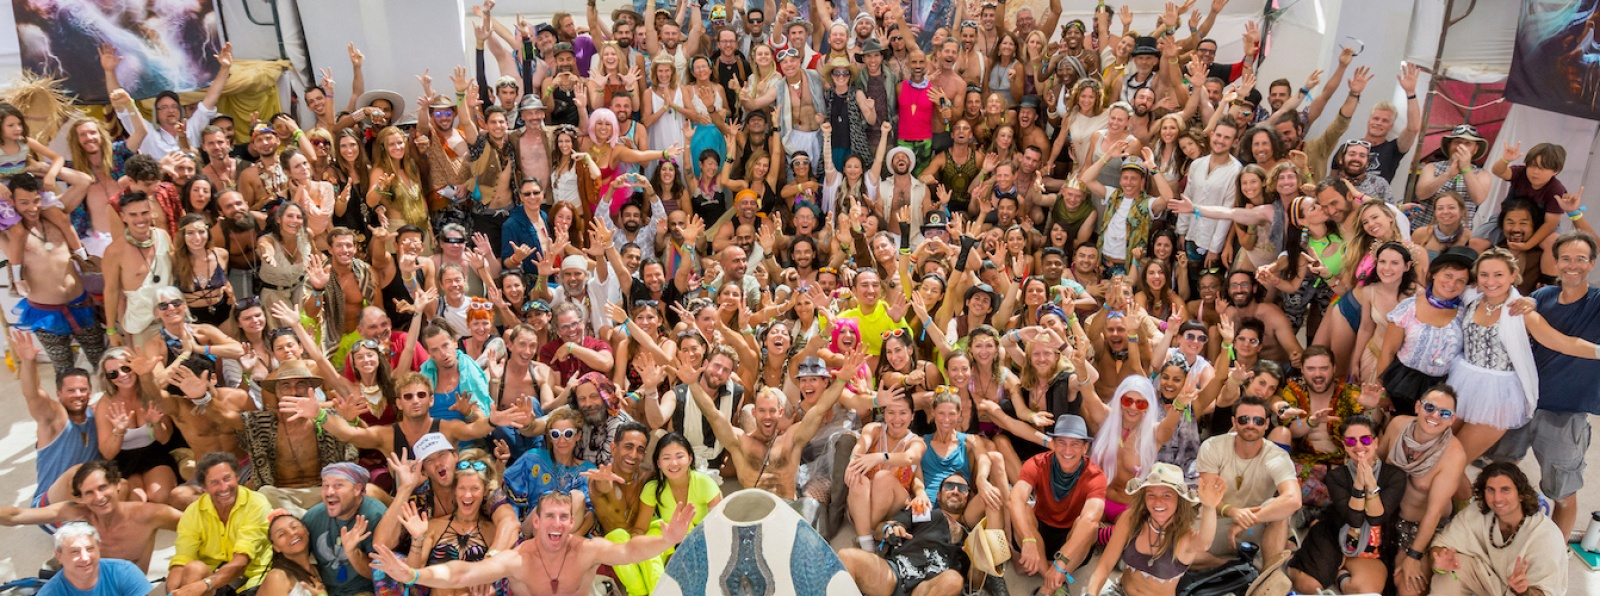 Camp Mystic - Getting Involved Group Shot 2019